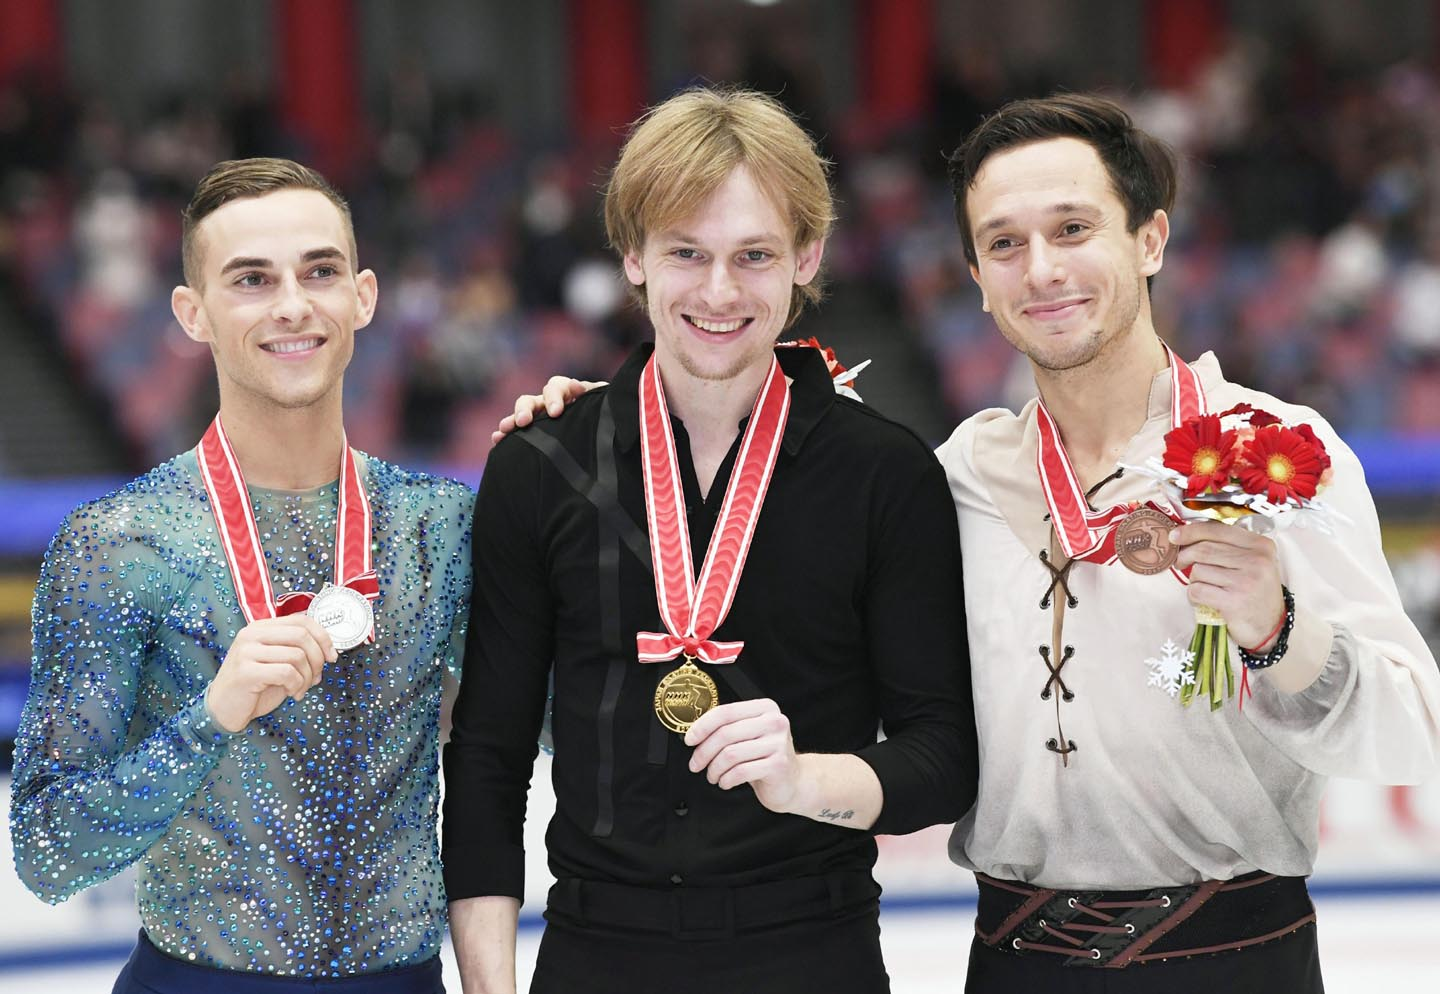 Sergei Voronov of Russia (center)  poses with the gold medal, with second placed Adam Rippon of the United States (left) and third-placed  Alexei Bychenko of Israel (right) at the NHK Trophy figure skating on Saturday in Osaka, western Japan.